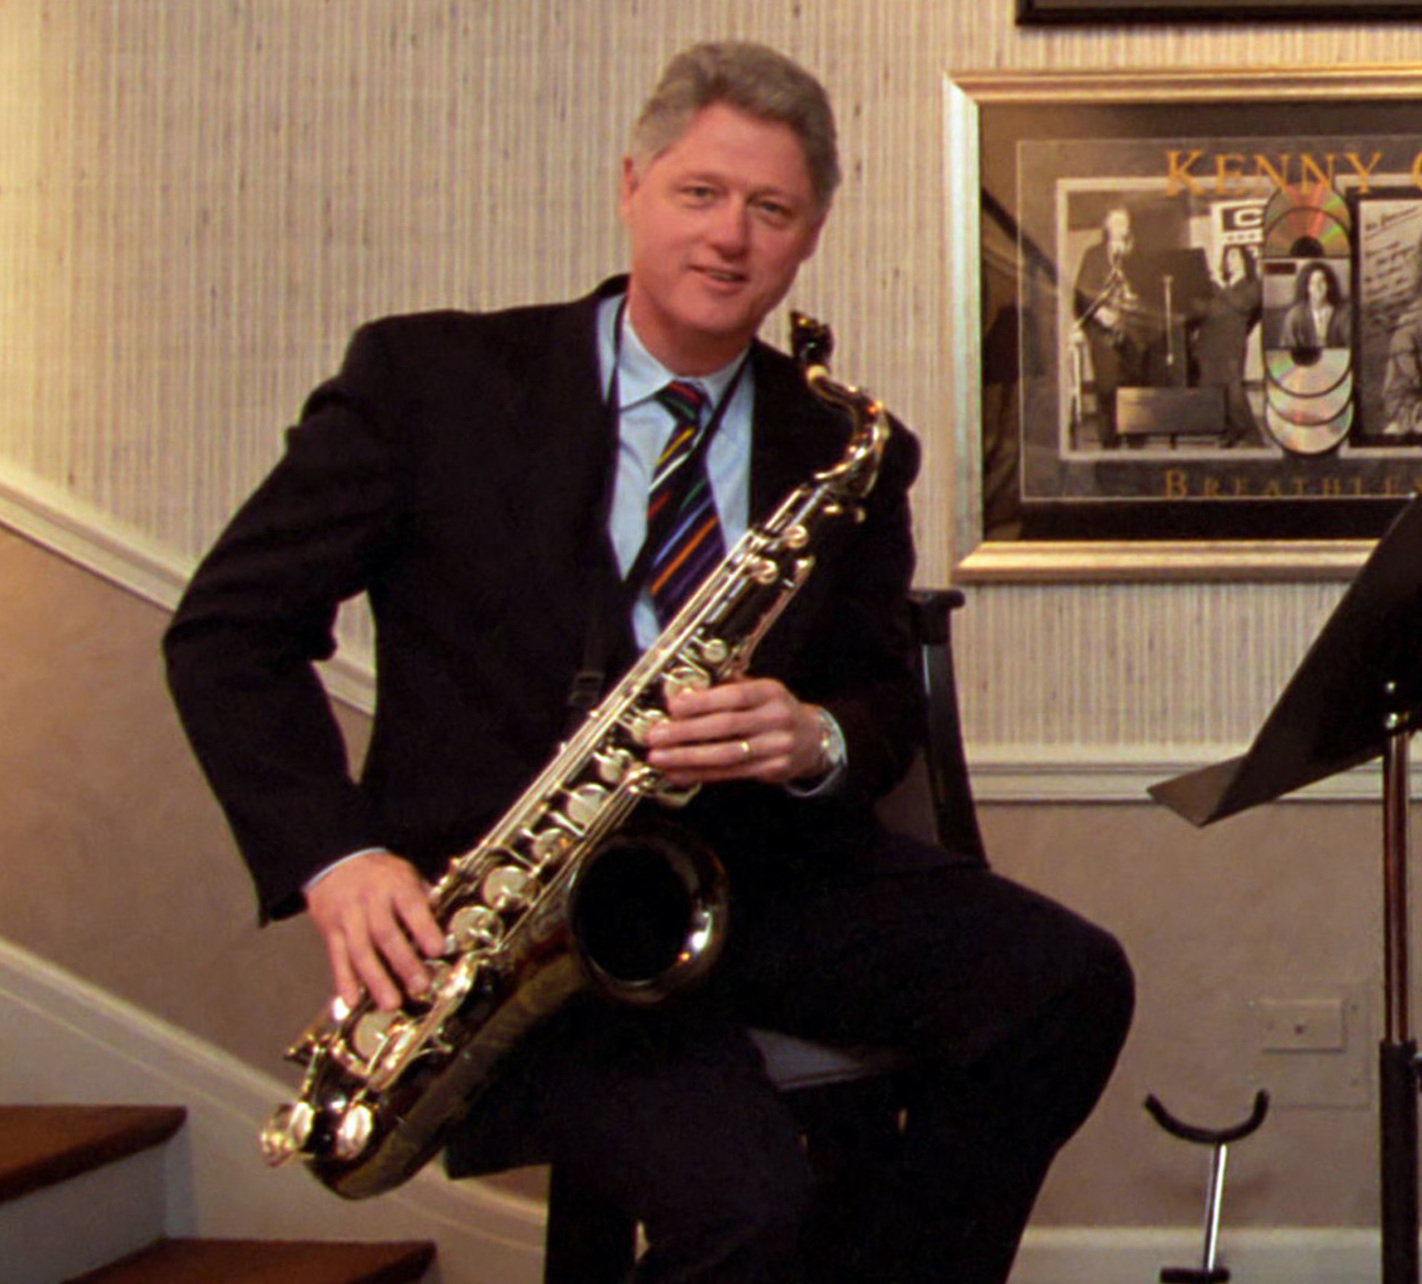 bill clinton in the white house music room (cropped2).jpg